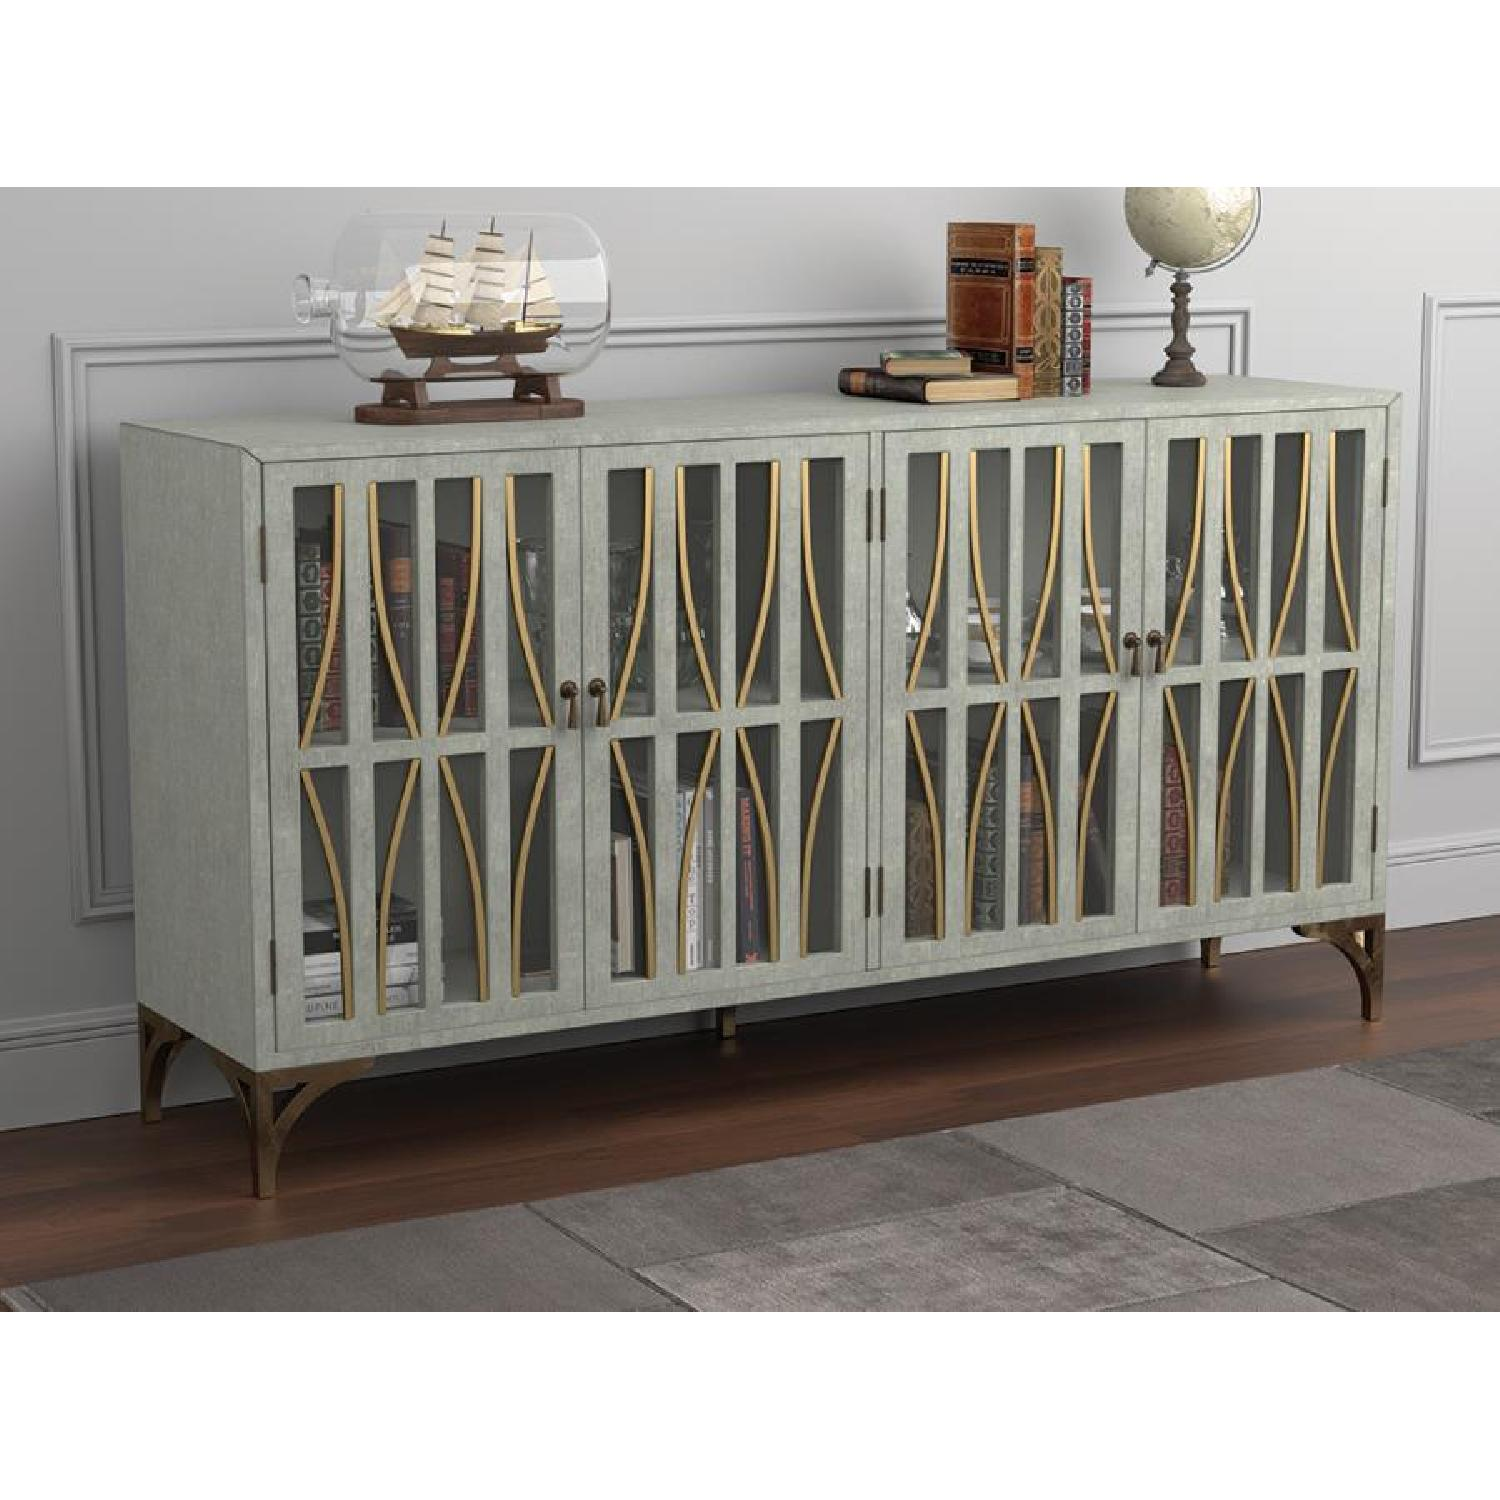 Contemporary Accent Cabinet In Grey Green w/ Bronze Hardware - image-6